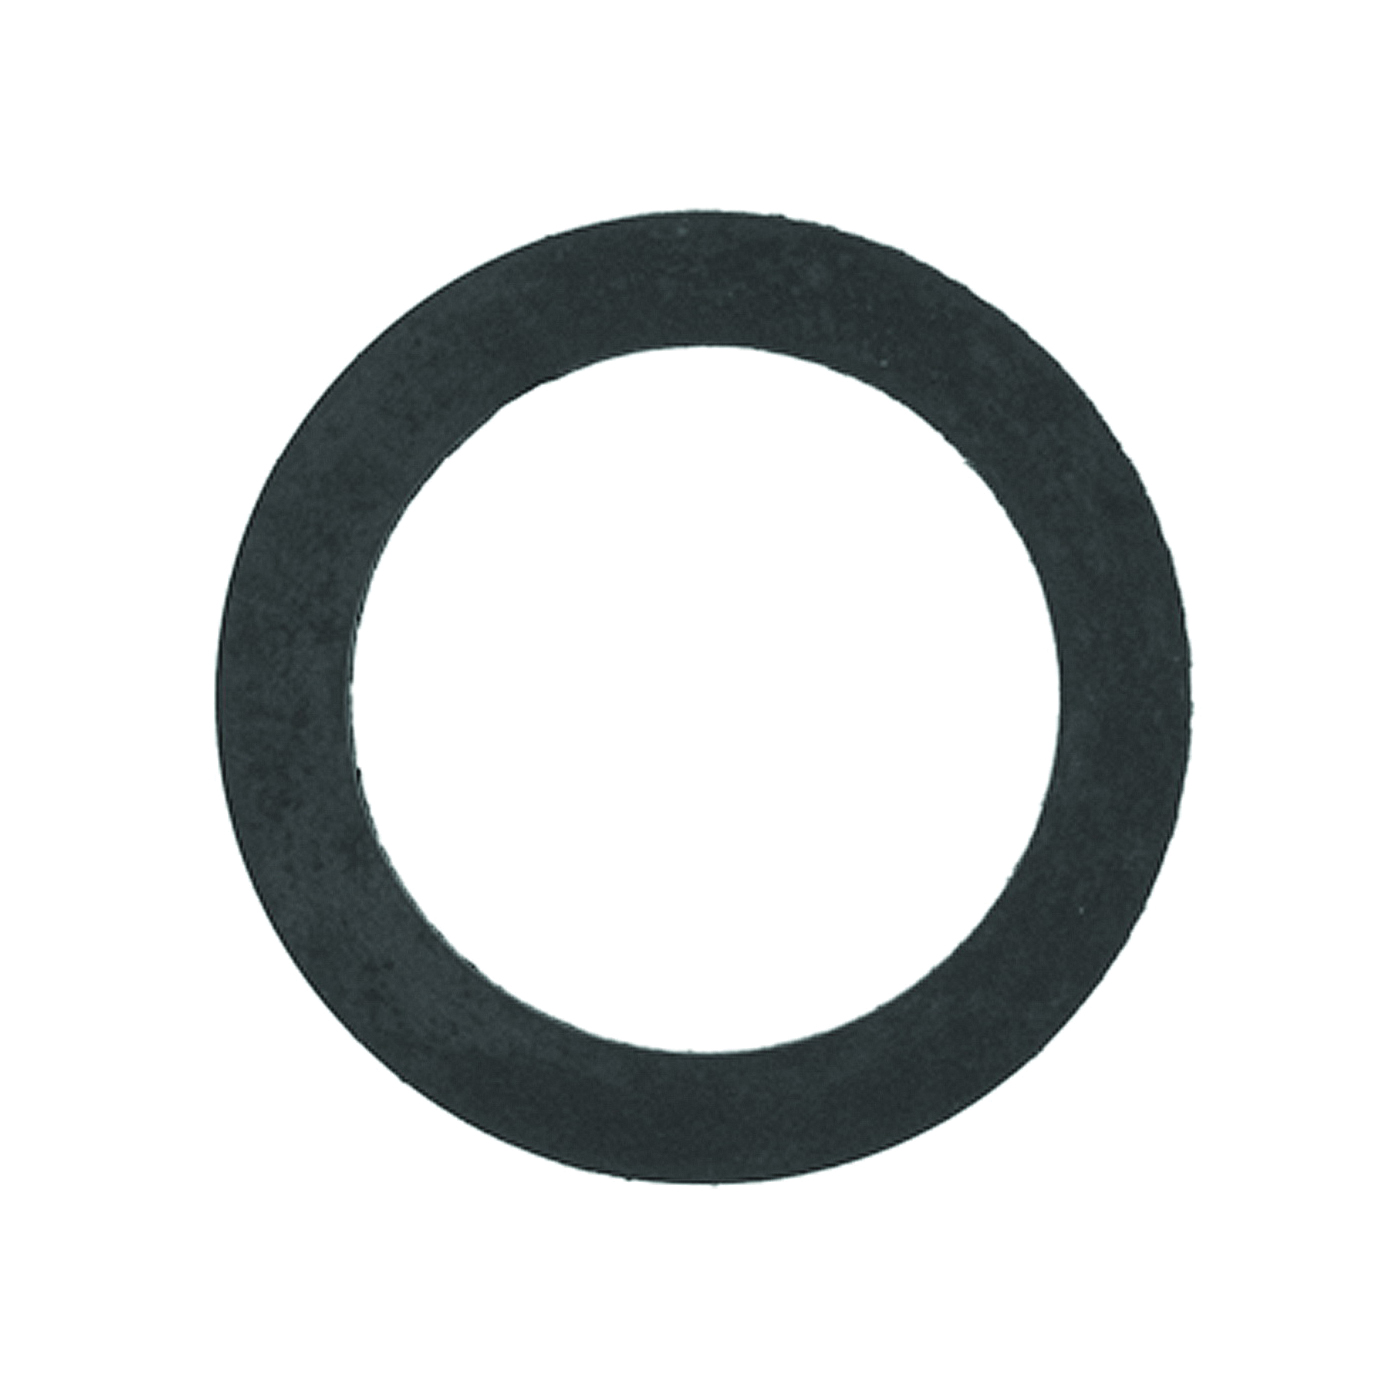 Picture of Danco 36344B Hose Washer, 5/8 in ID, 1/16 in OD, 1/8 in Thick, Rubber